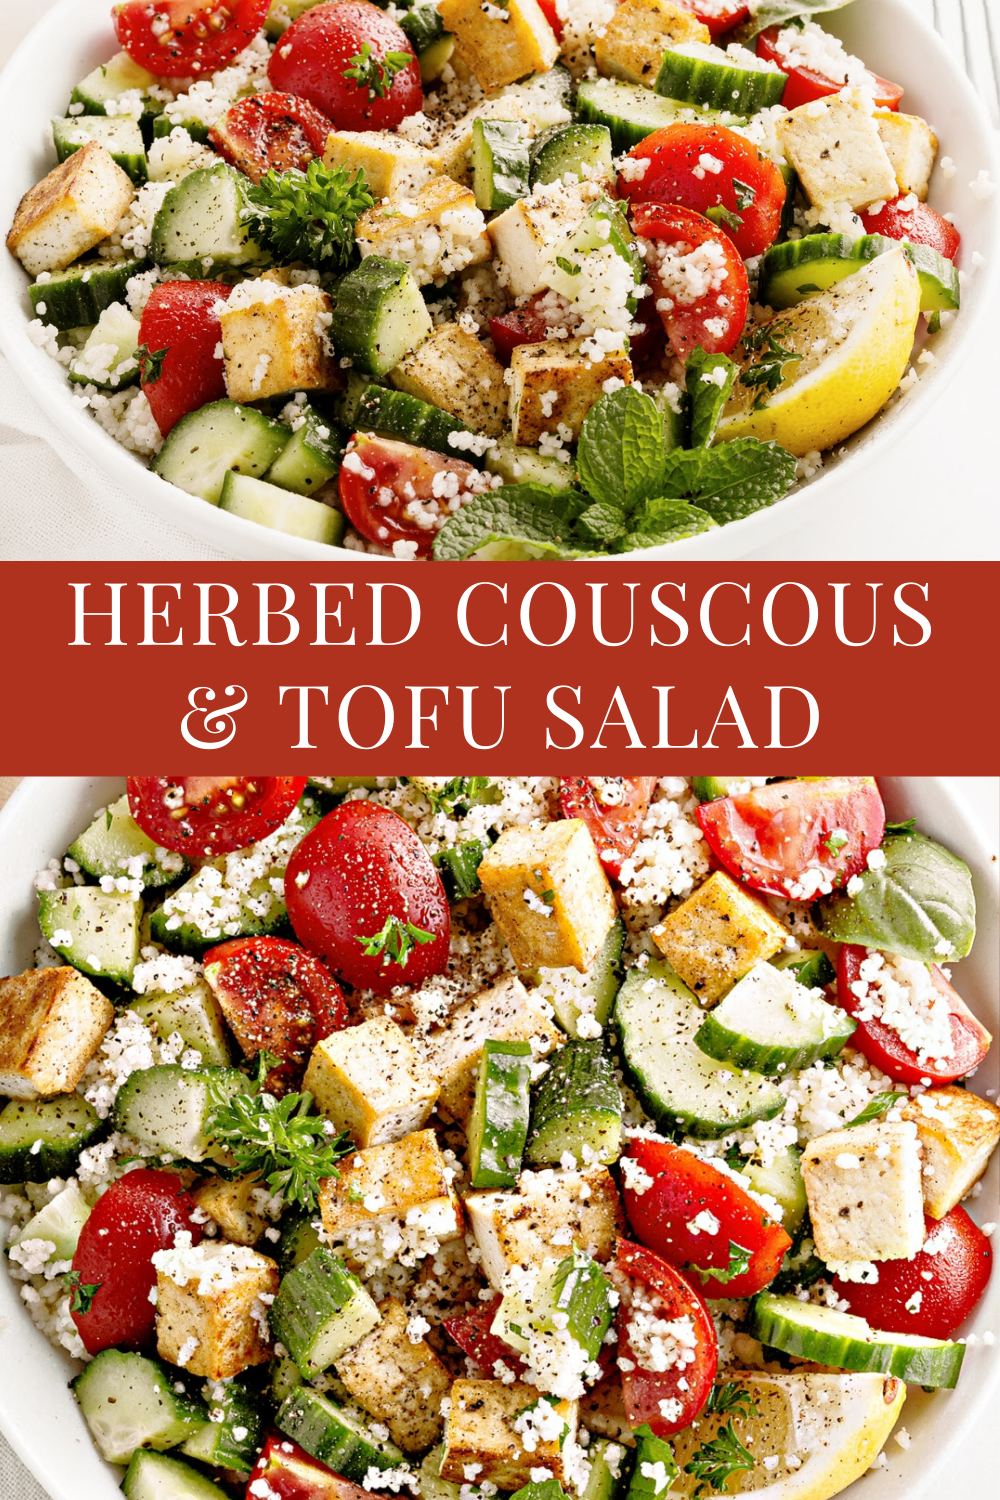 Light, bright, & flavorful! Serve this Mediterranean-style fare as a quick and easy entree salad or side dish! via @thiswifecooks